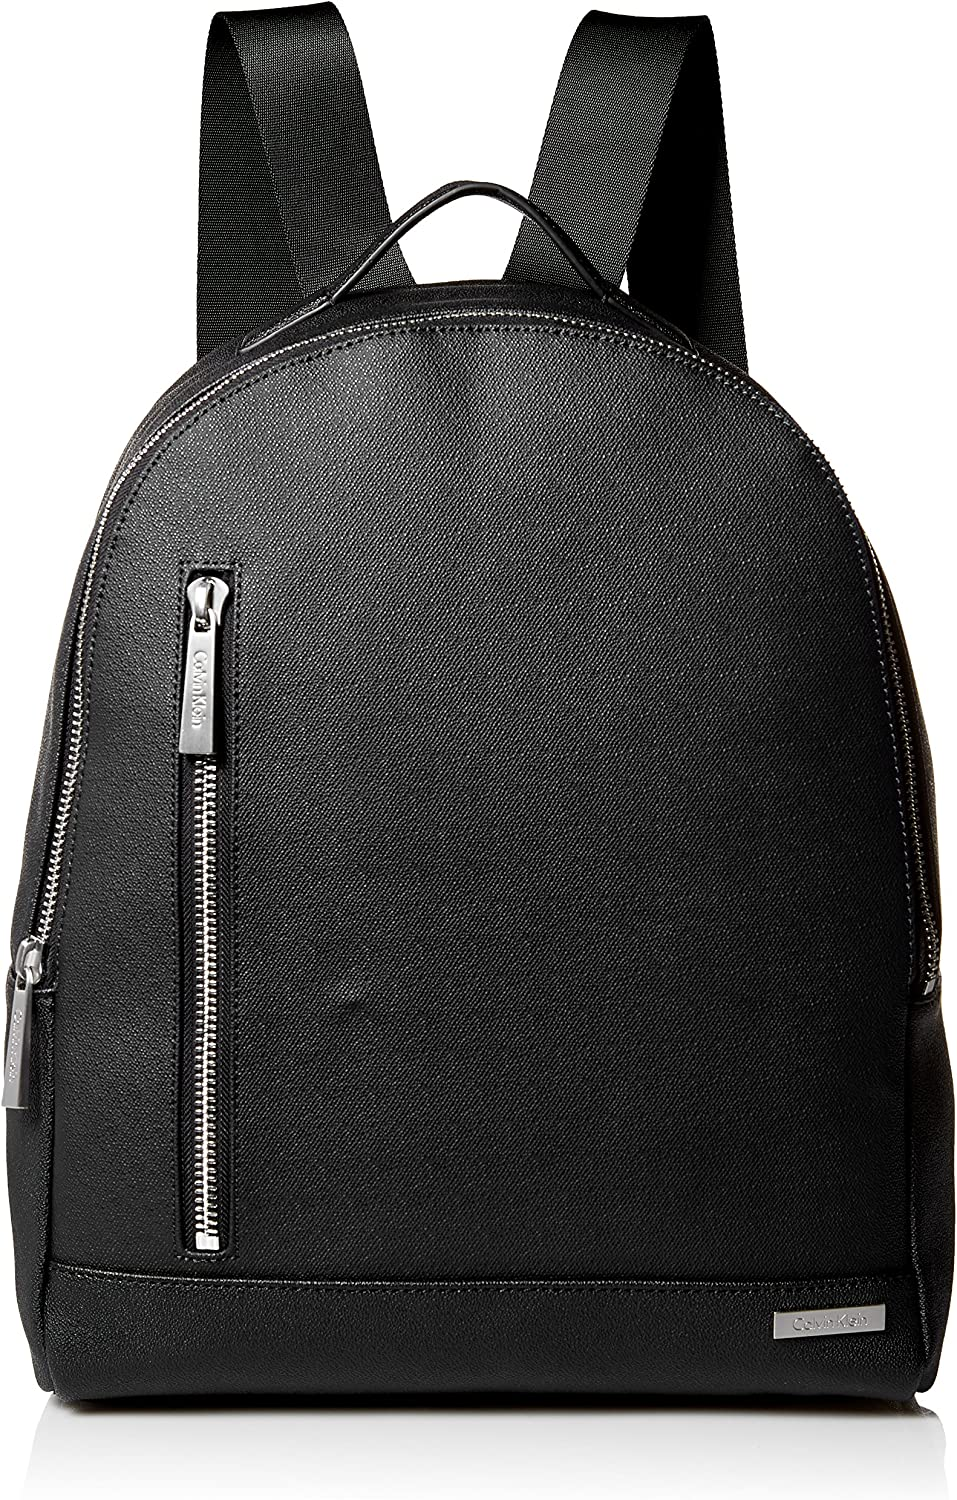 Calvin Klein Men's Saffiano Backpack